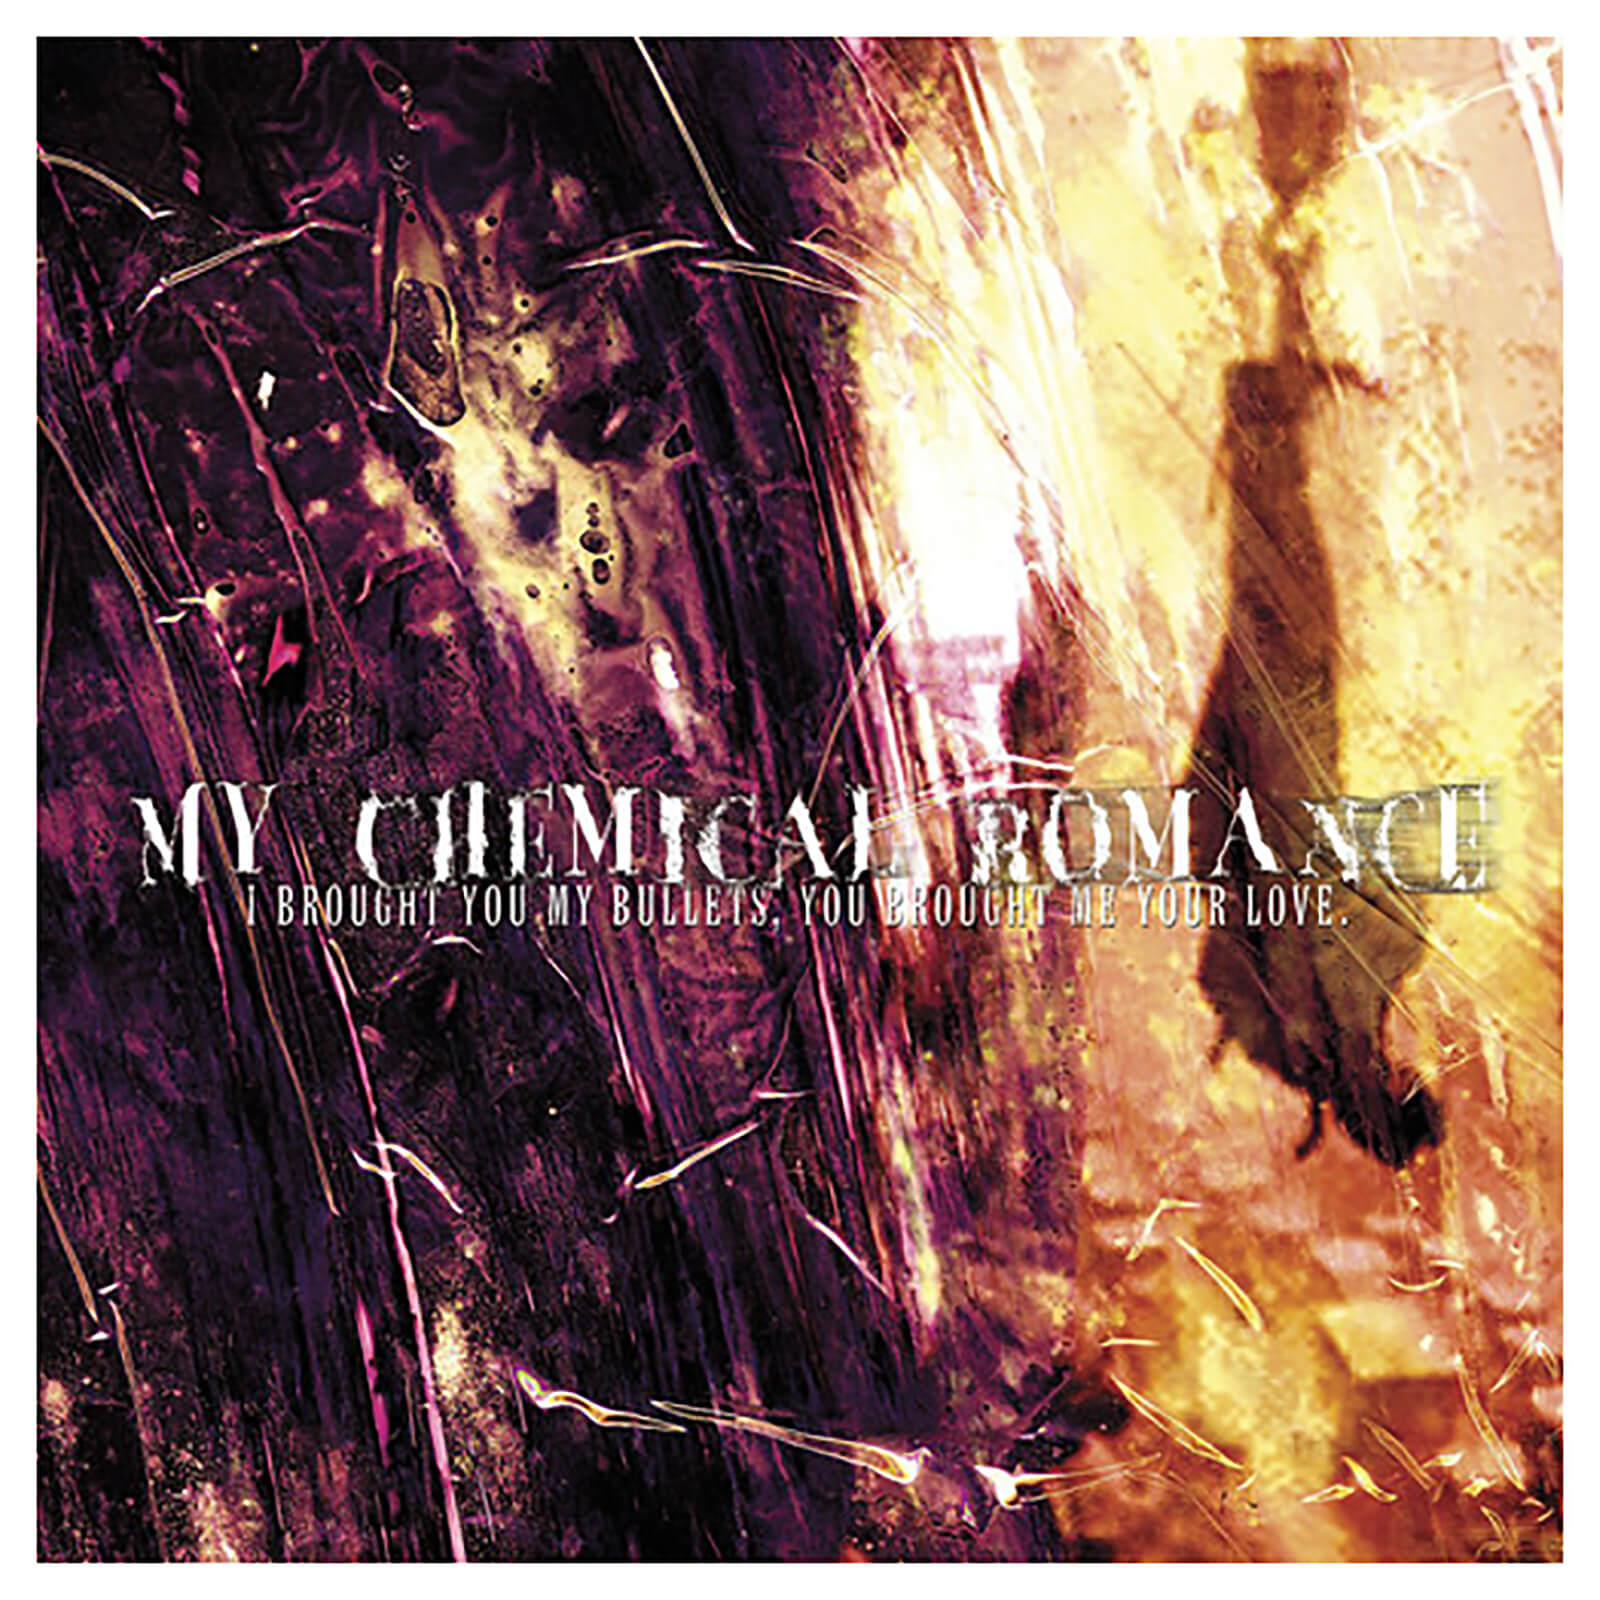 My Chemical Romance - I Brought You My Bullets You Brought Me Your Love - Vinyl